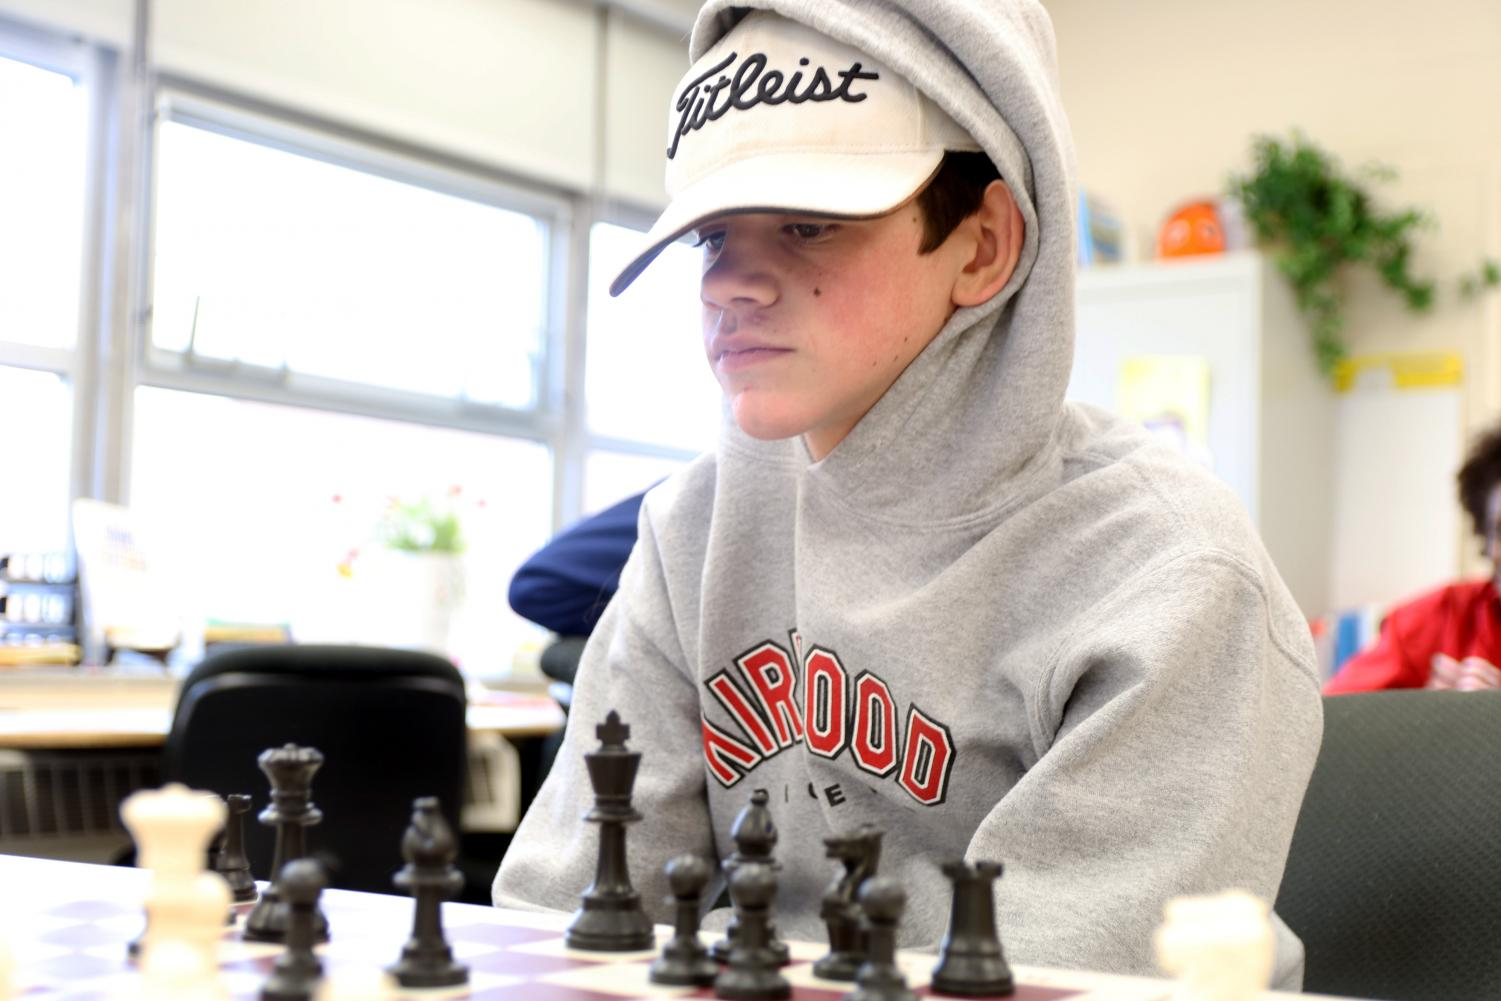 As+Cameron+Schulze%2C+freshman%2C+stares+at+the+chessboard%2C+he+debates+in+his+head+the+next+move+he+will+make.+Jan.+24.+